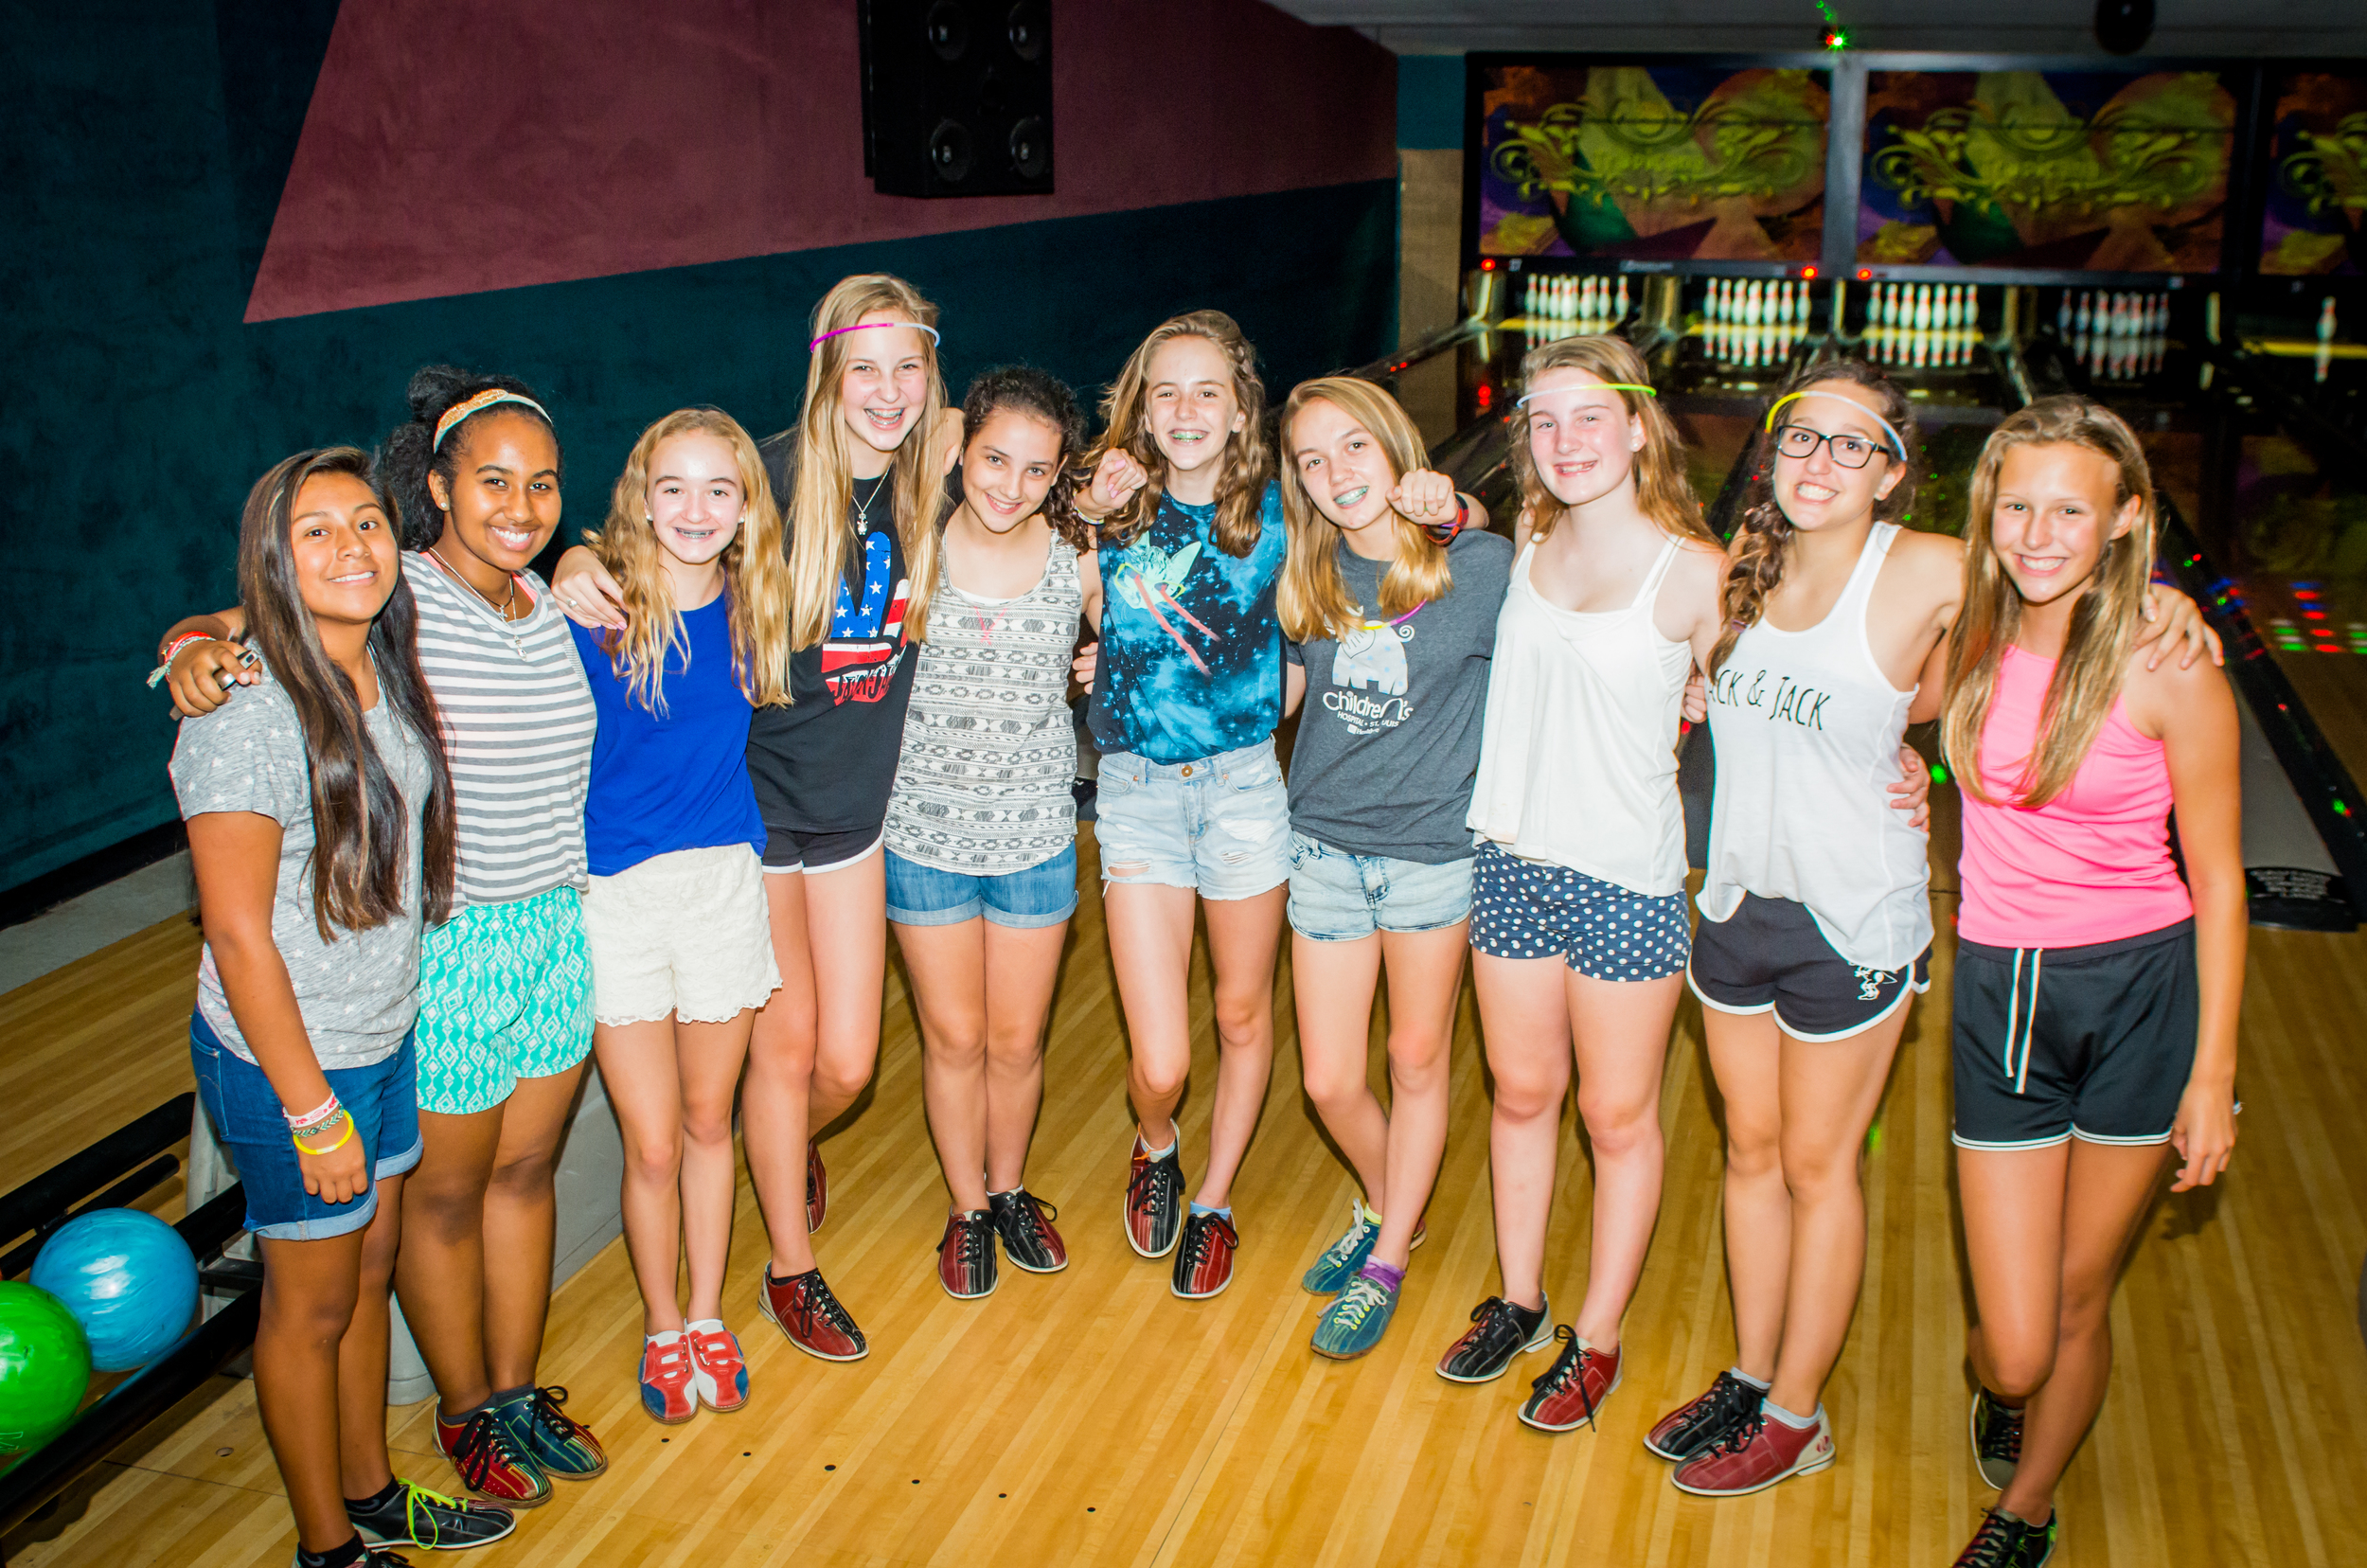 20140823-Olivia Bowling Party-PMG_5301.jpg